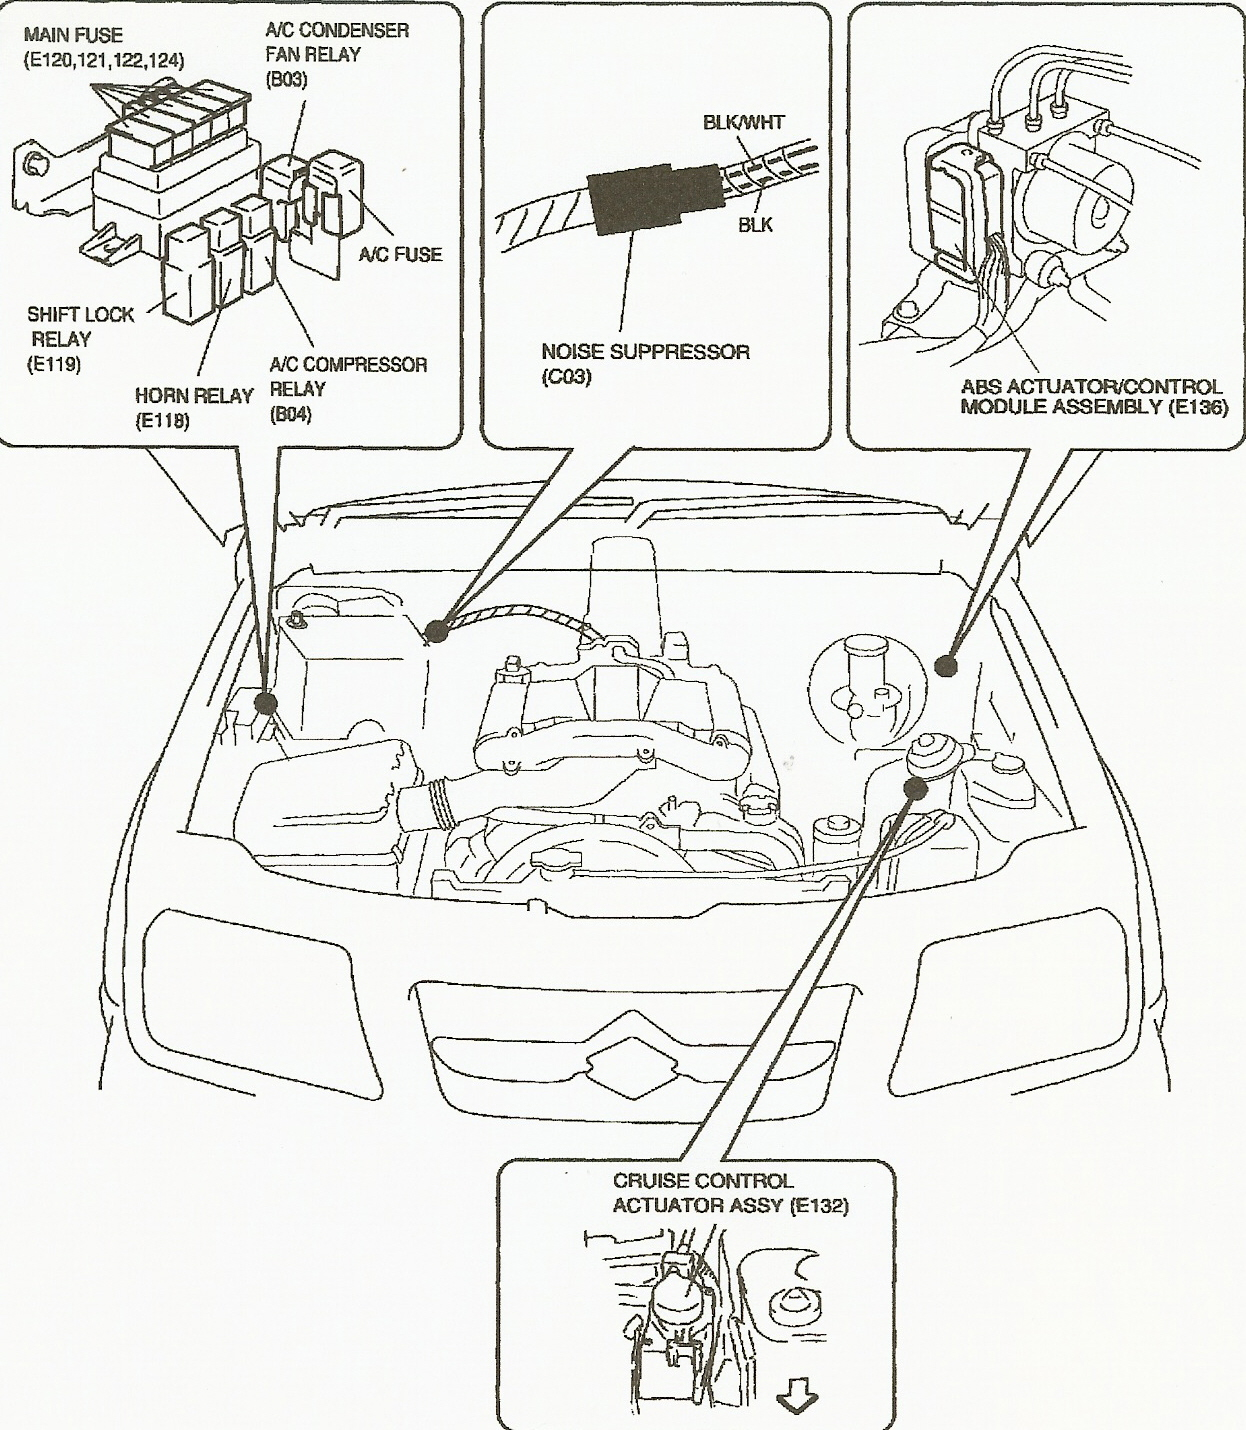 hight resolution of fuse box diagram for 1999 suzuki grand vitara wiring diagram 2001 suzuki grand vitara 1999 suzuki grand vitara wiring diagram